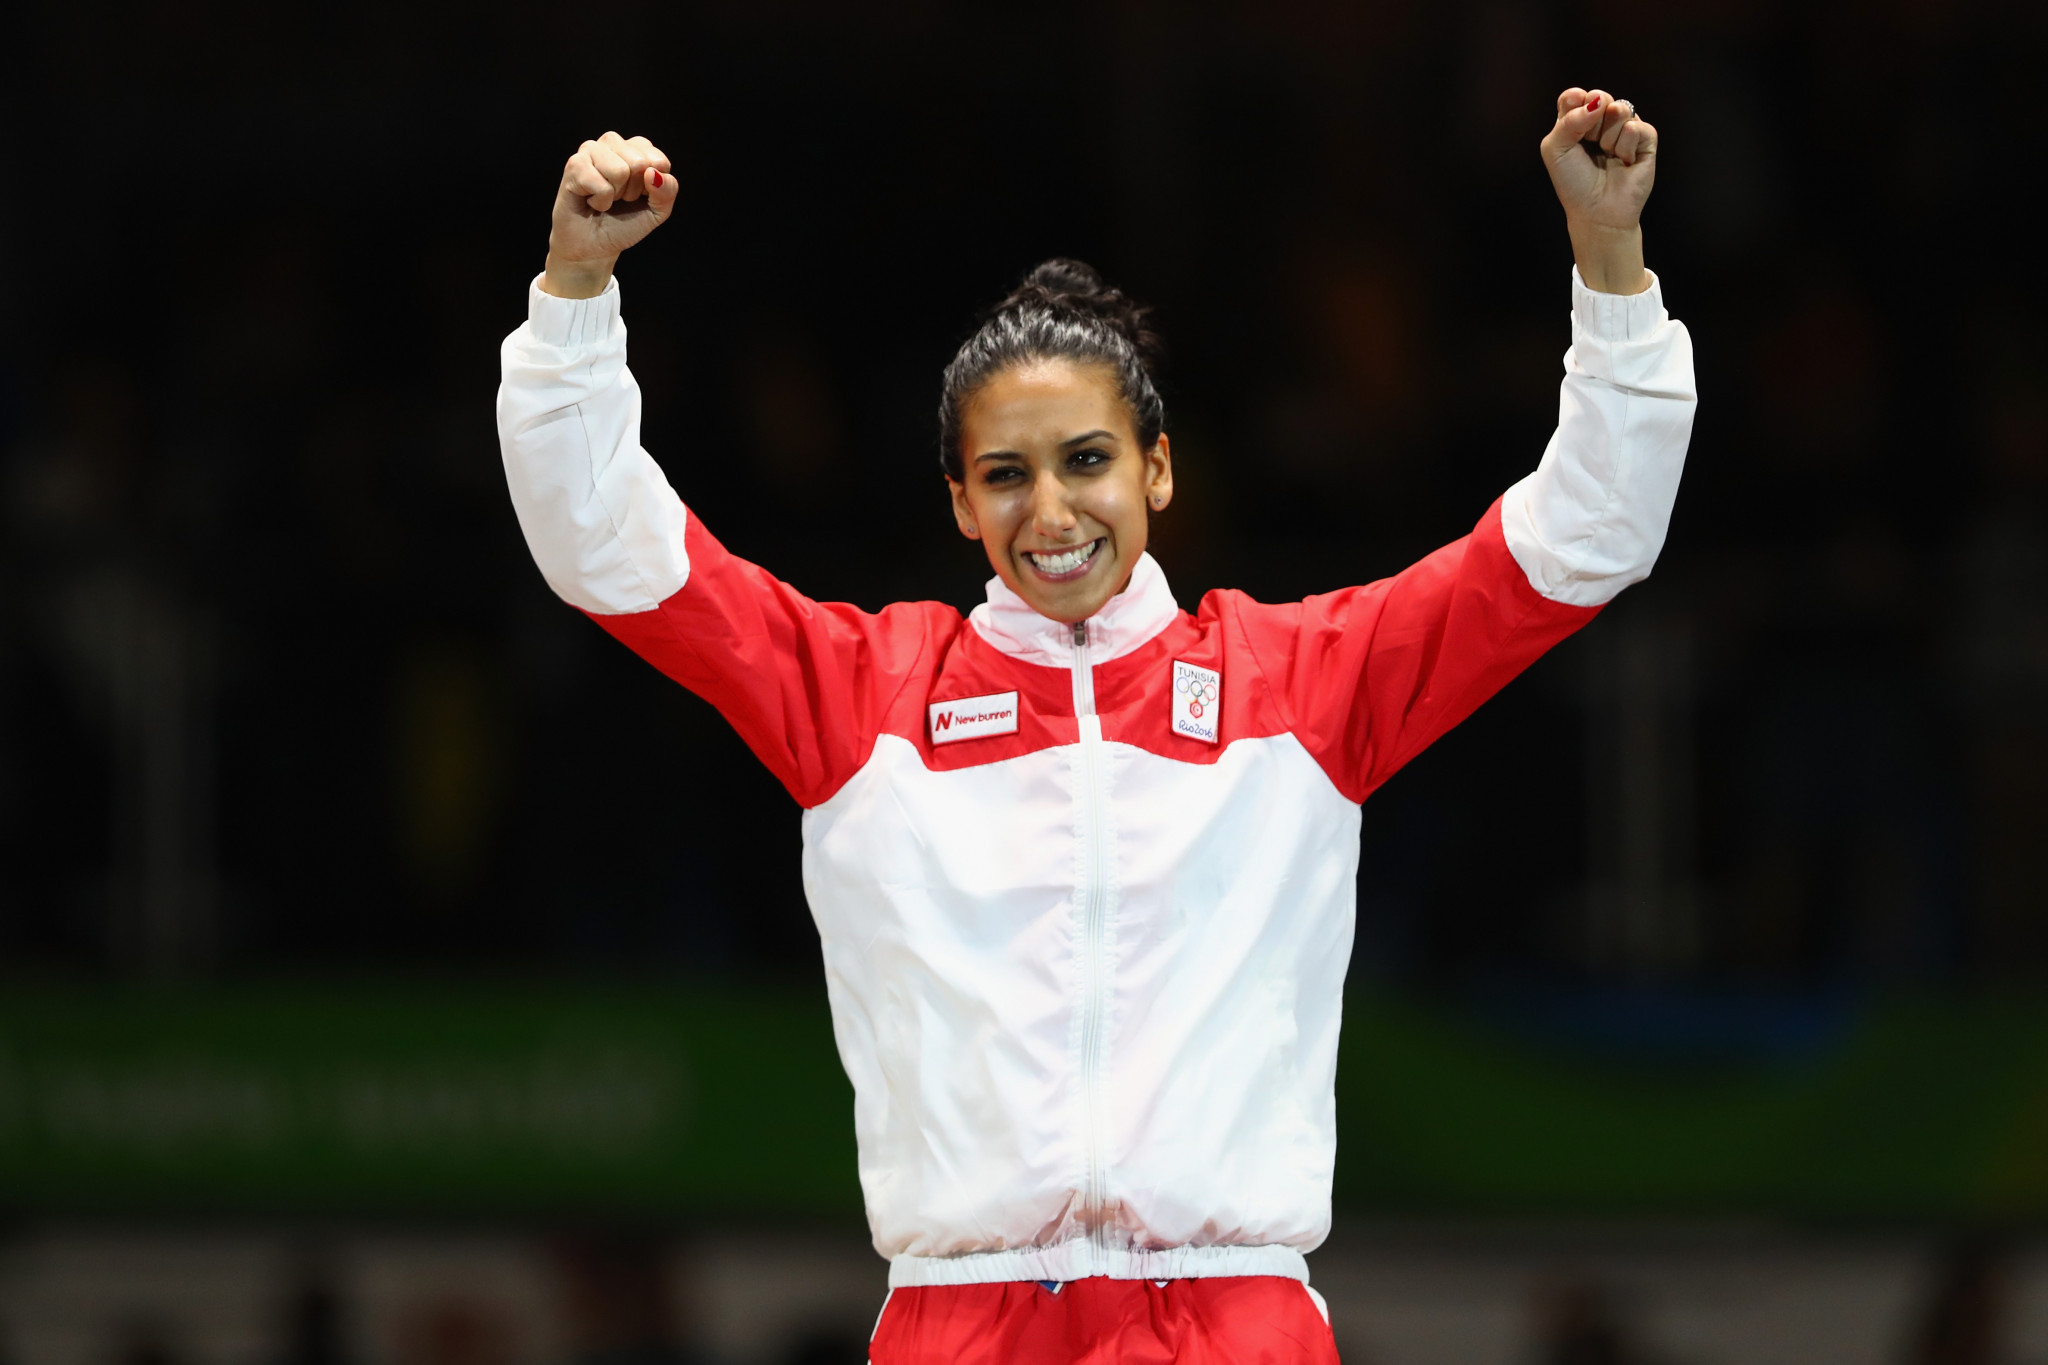 Hosts Tunisia win double gold to end African Fencing Championships